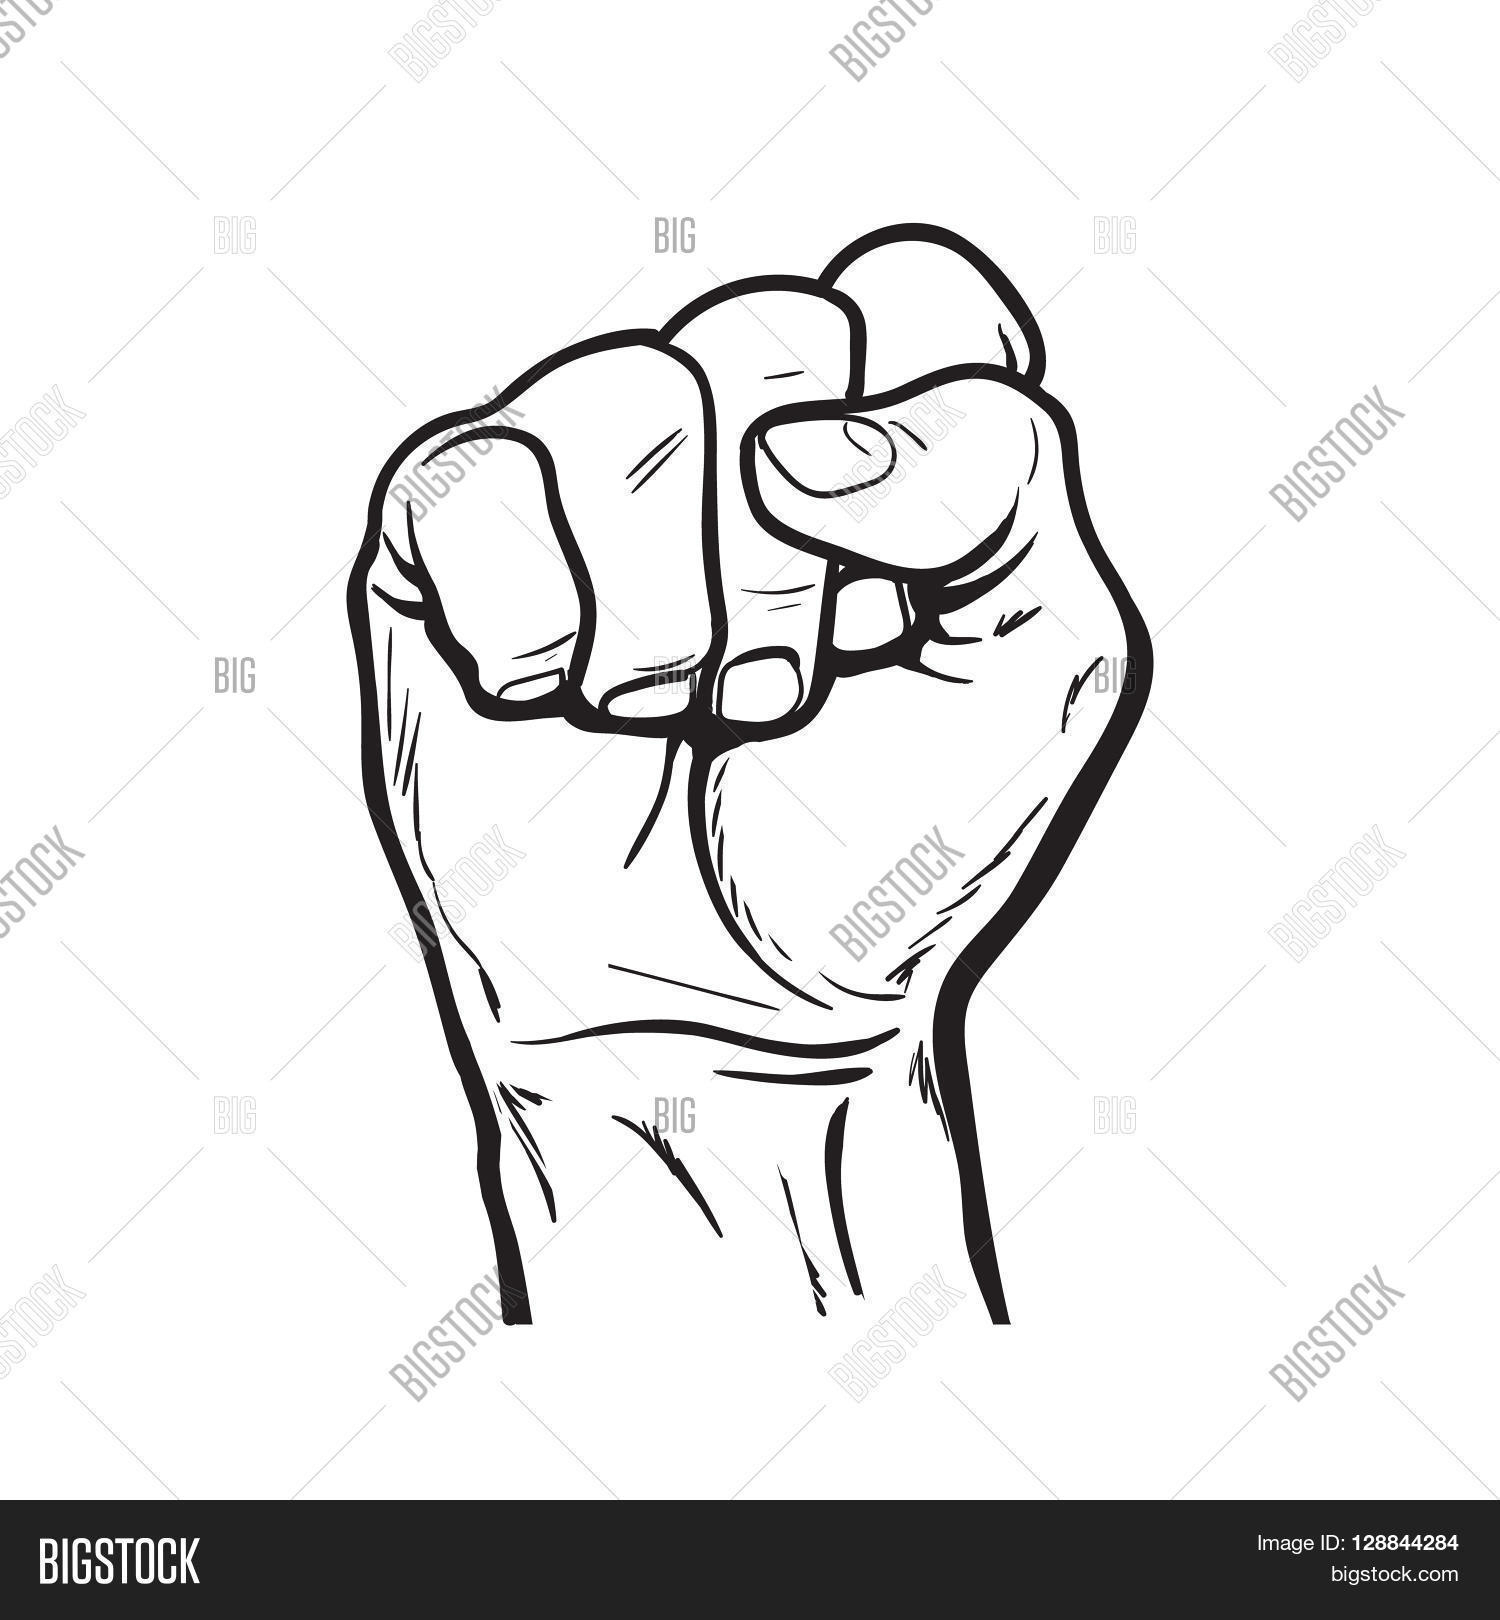 1500x1620 Drawing Of A Fist Drawn Fist Clenched Fist